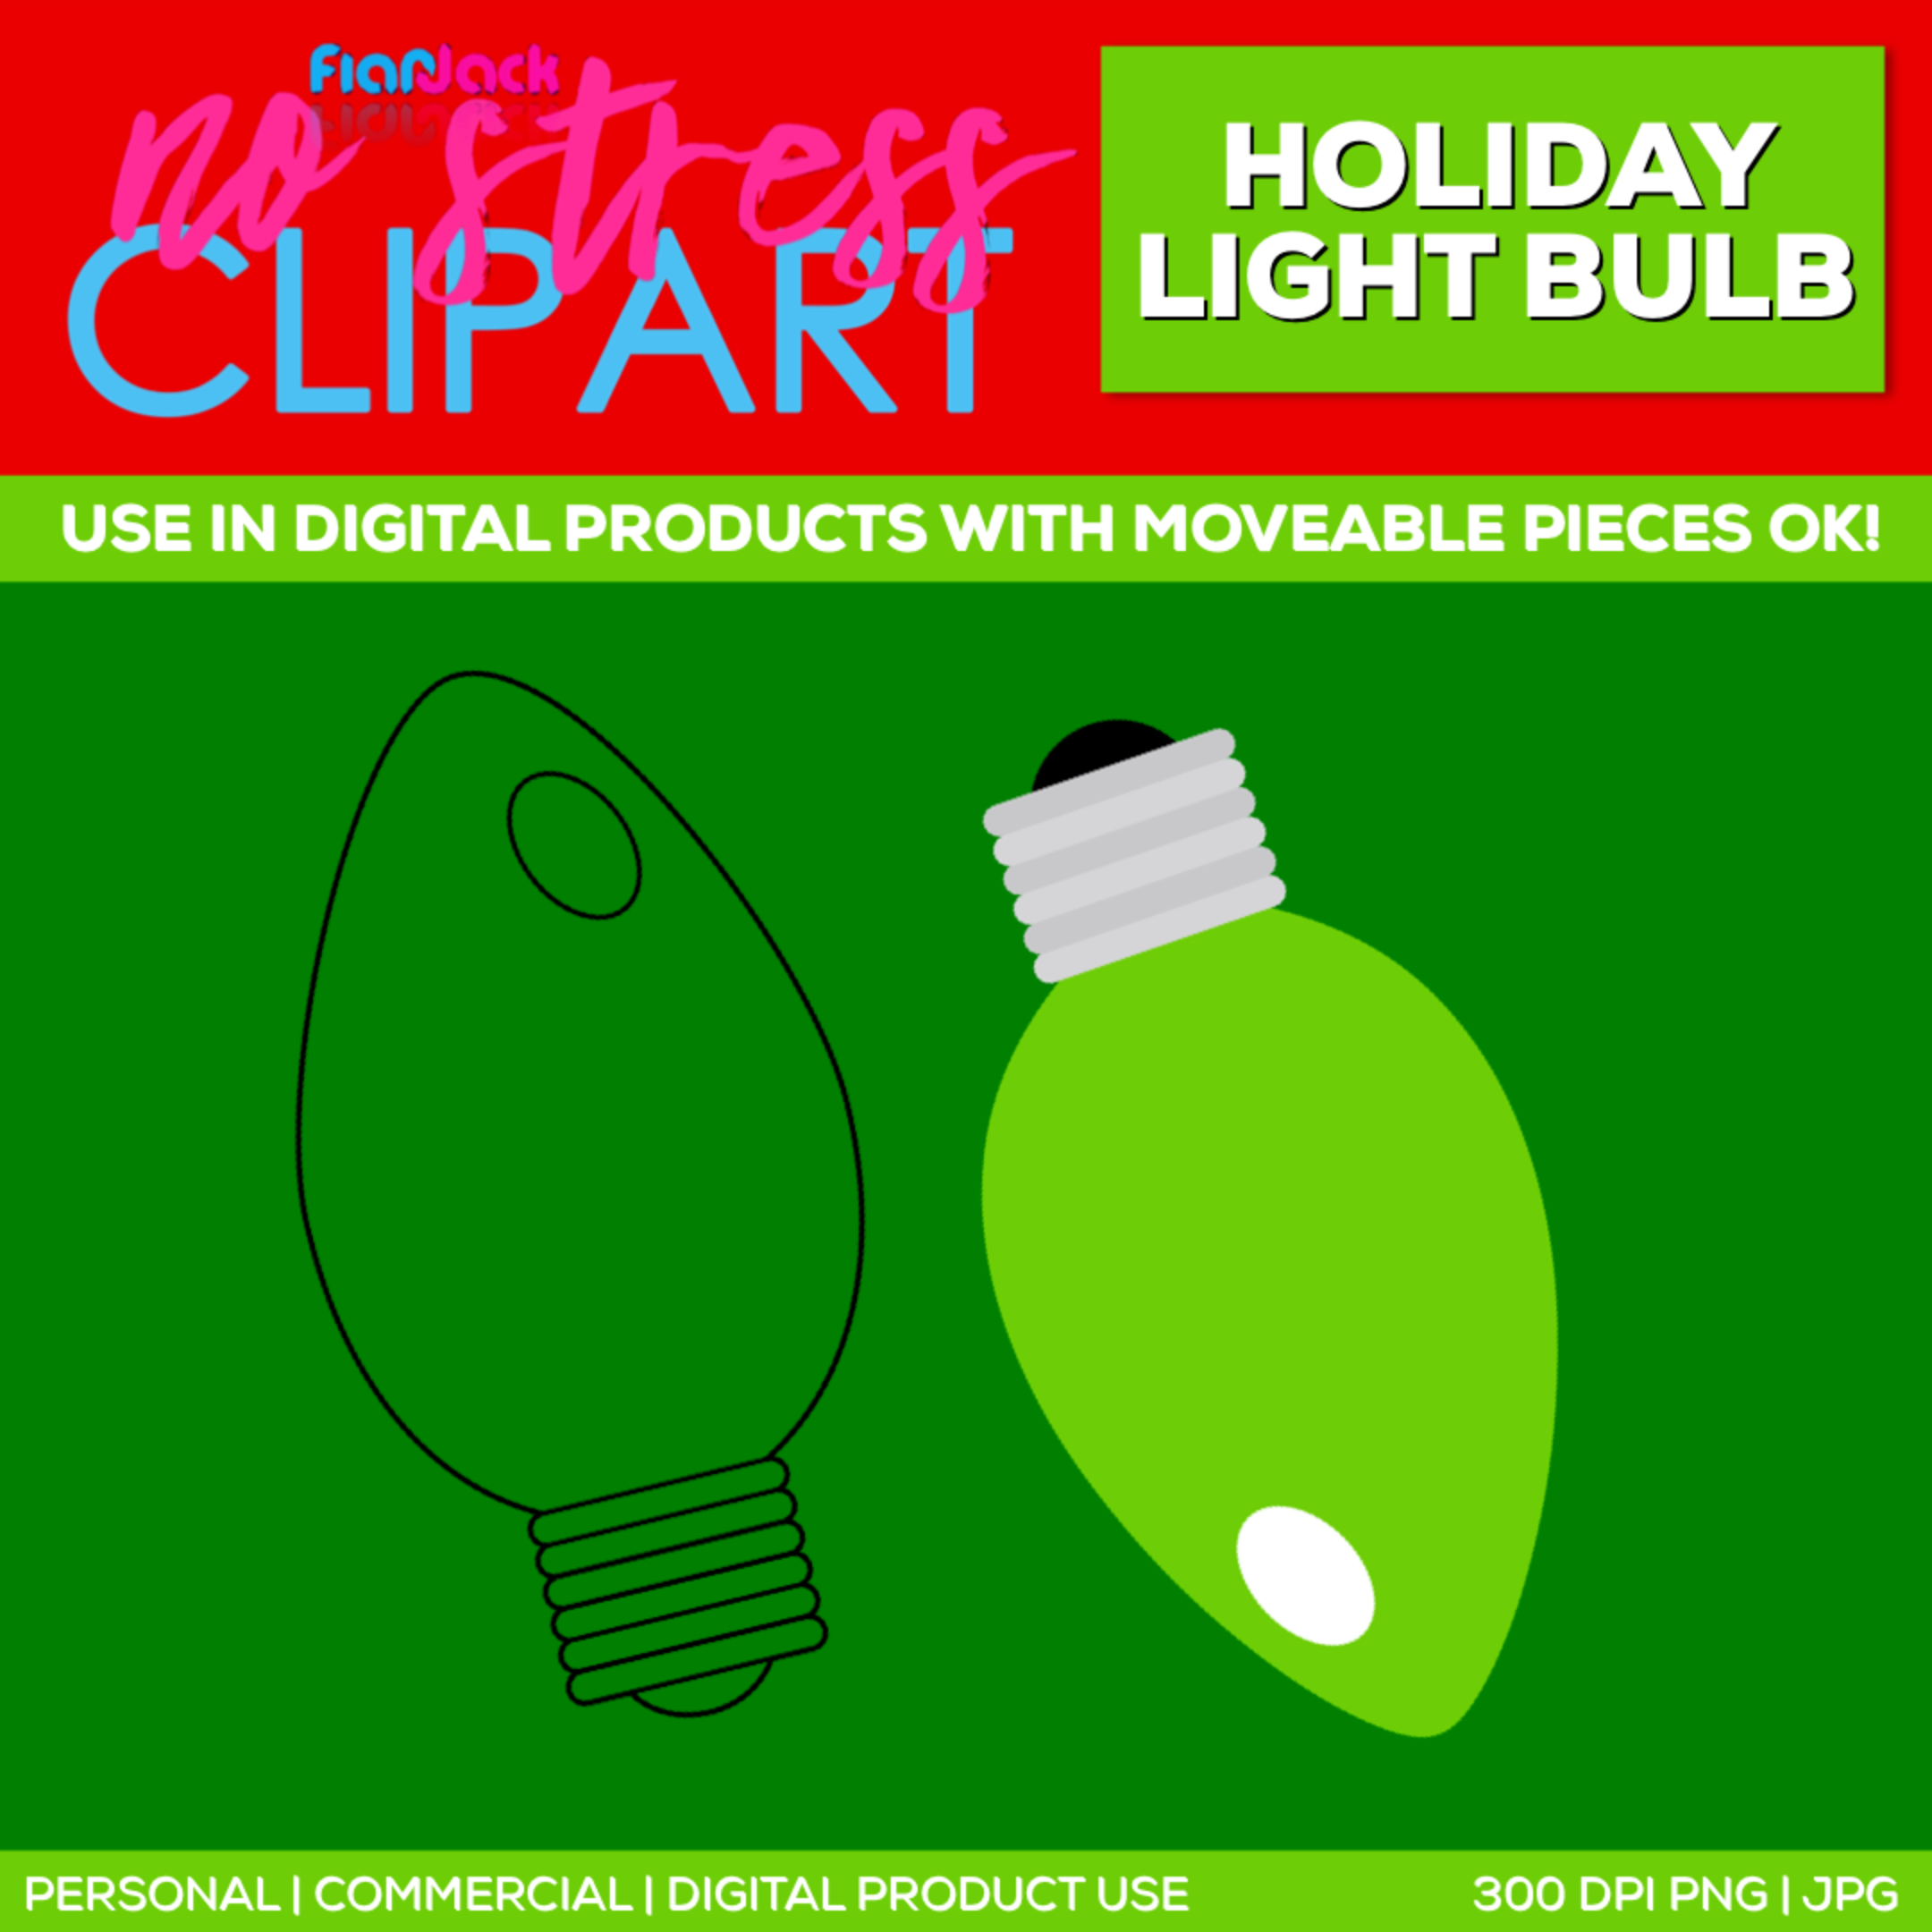 Holiday Light Bulb